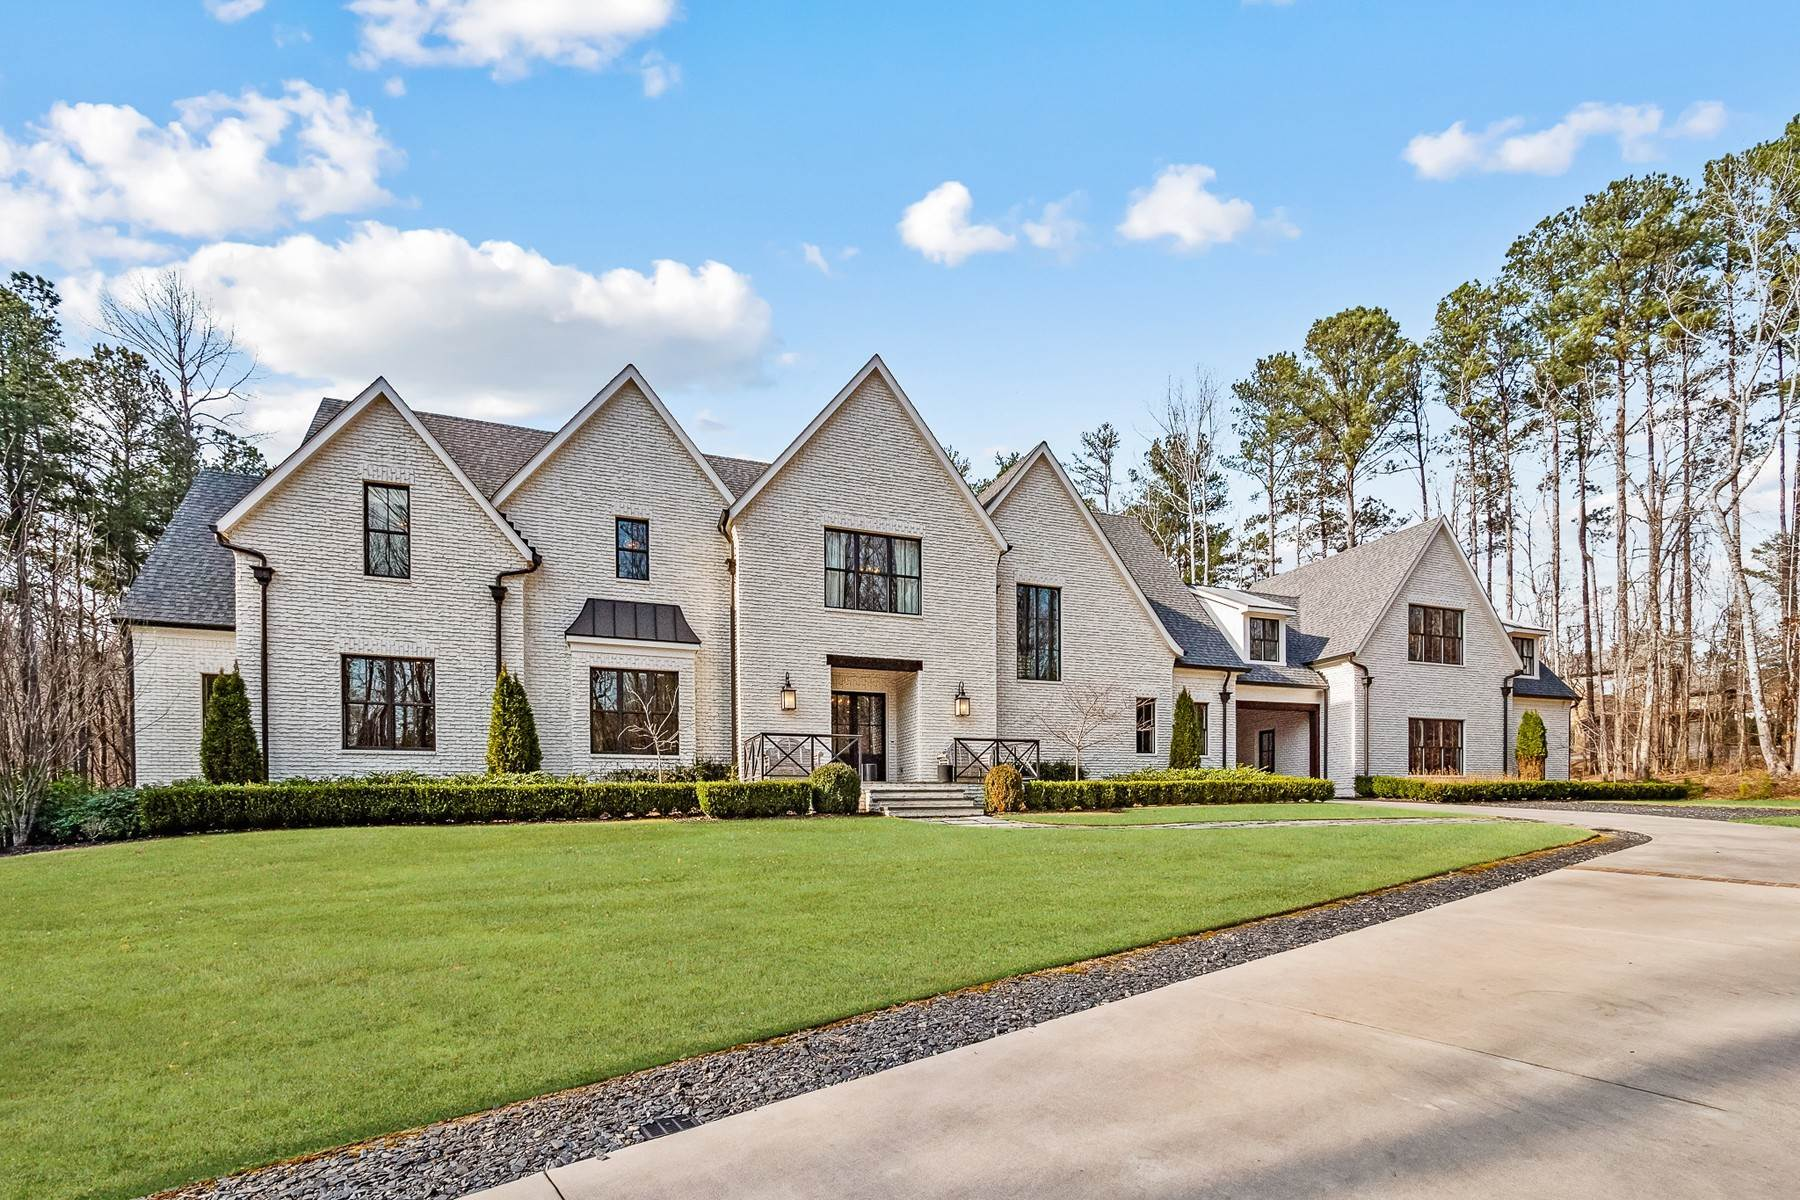 Single Family Homes for Active at Phenomenal Modern English Manor on 5+/- Private Acres 190 Platinum Ridge Point Fayetteville, Georgia 30215 United States